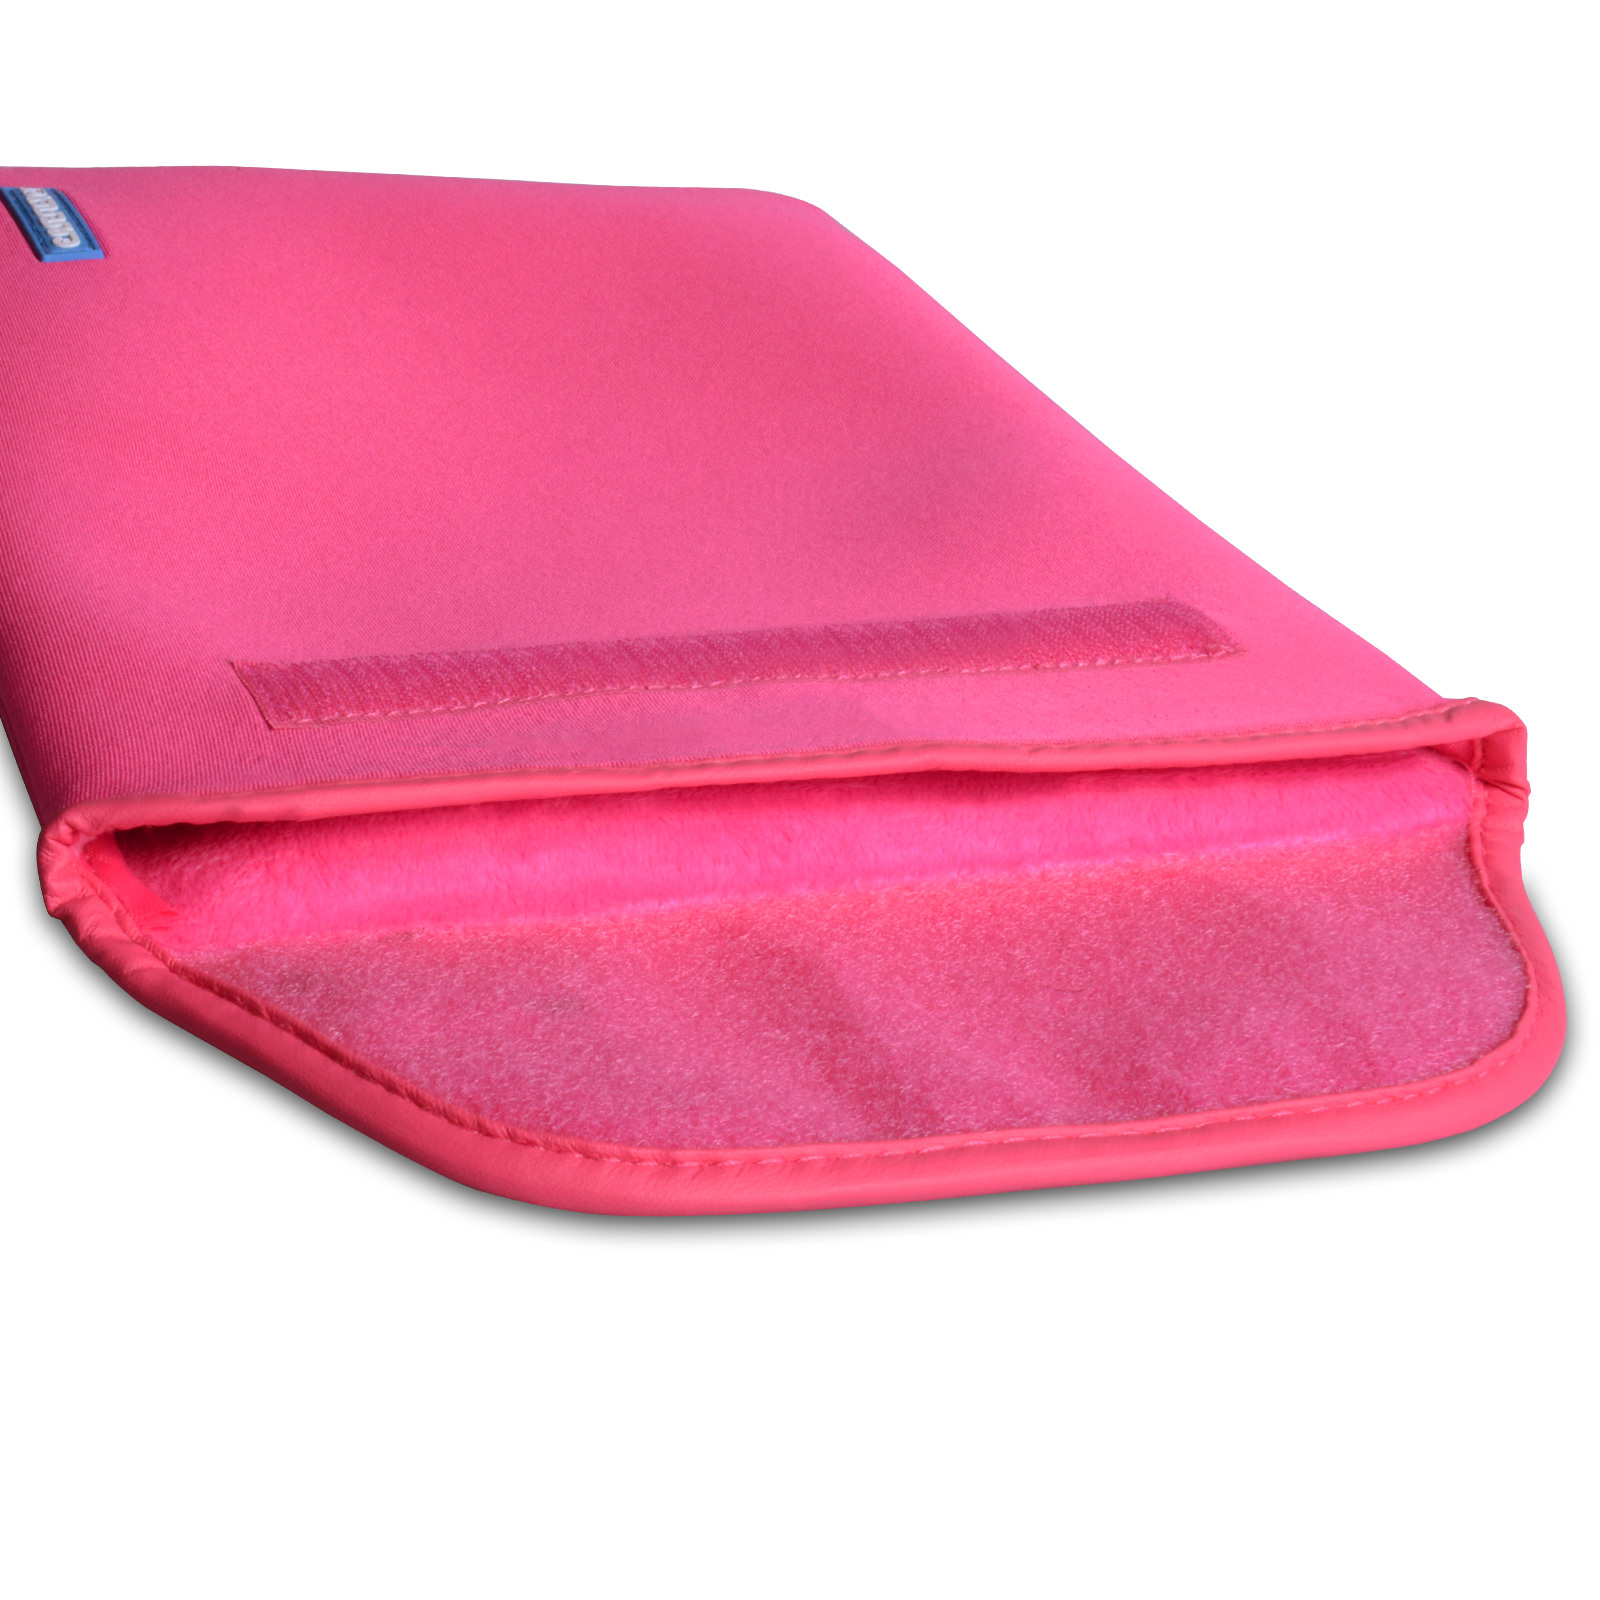 Caseflex 10 Inch Hot Pink Neoprene Tablet Pouch (M)